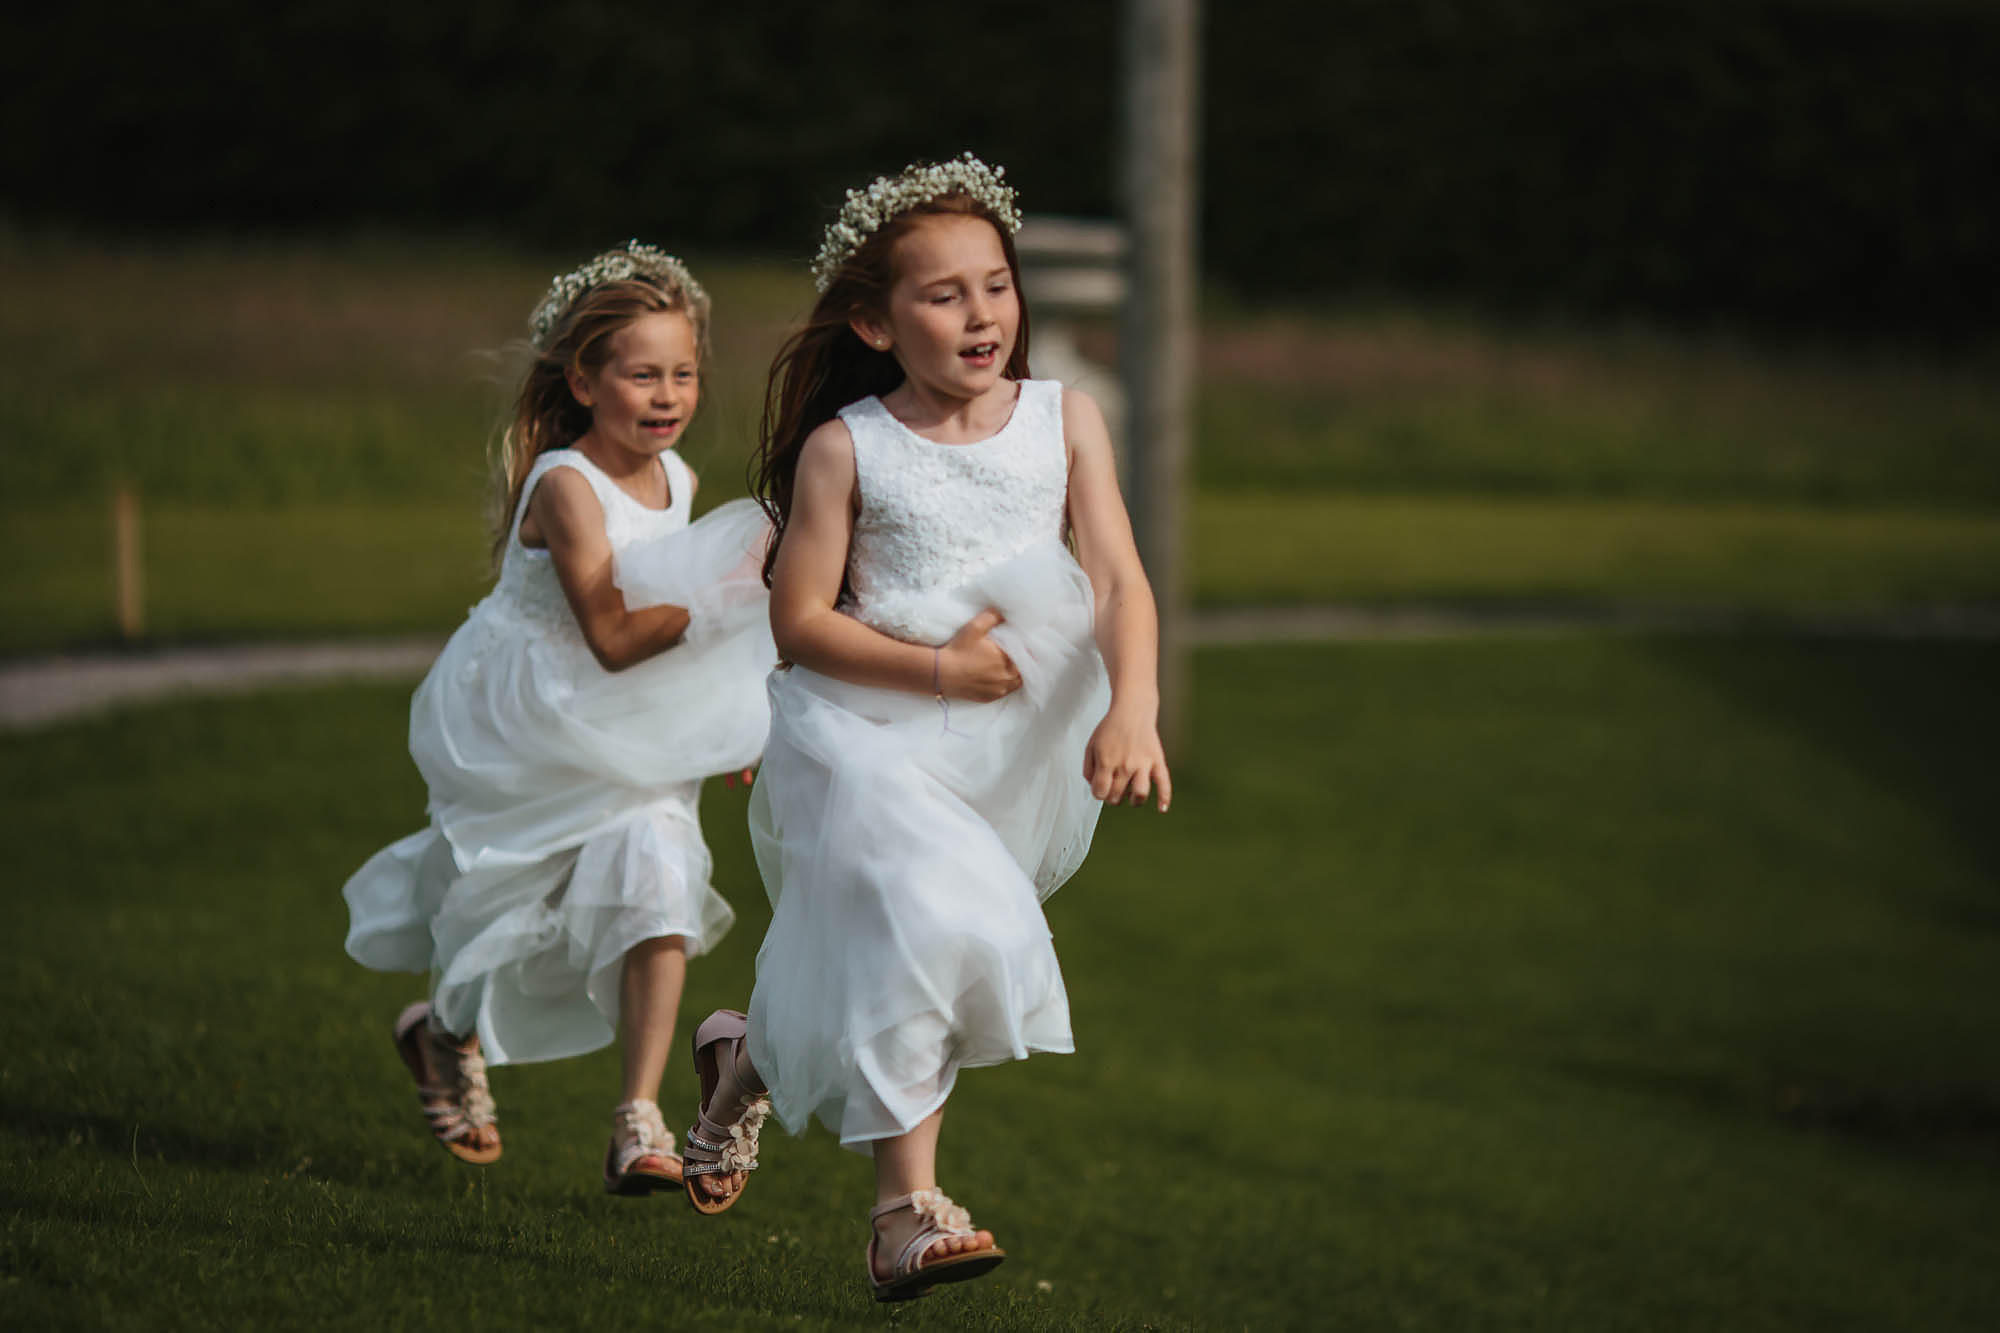 Bridesmaids running in the wedding dresses